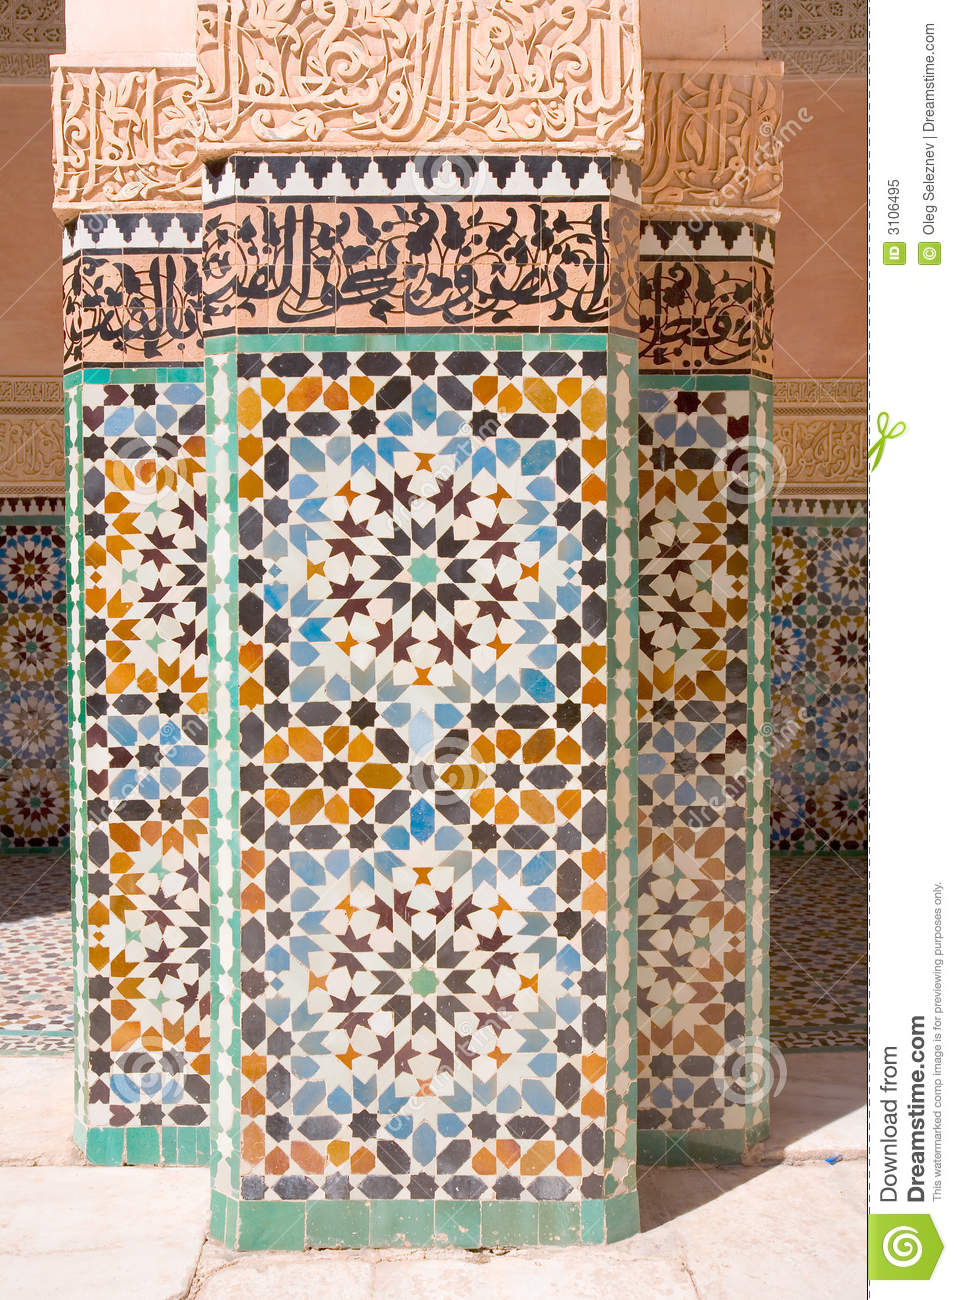 Arab Mosaic Royalty Free Stock Photo Image 3106495